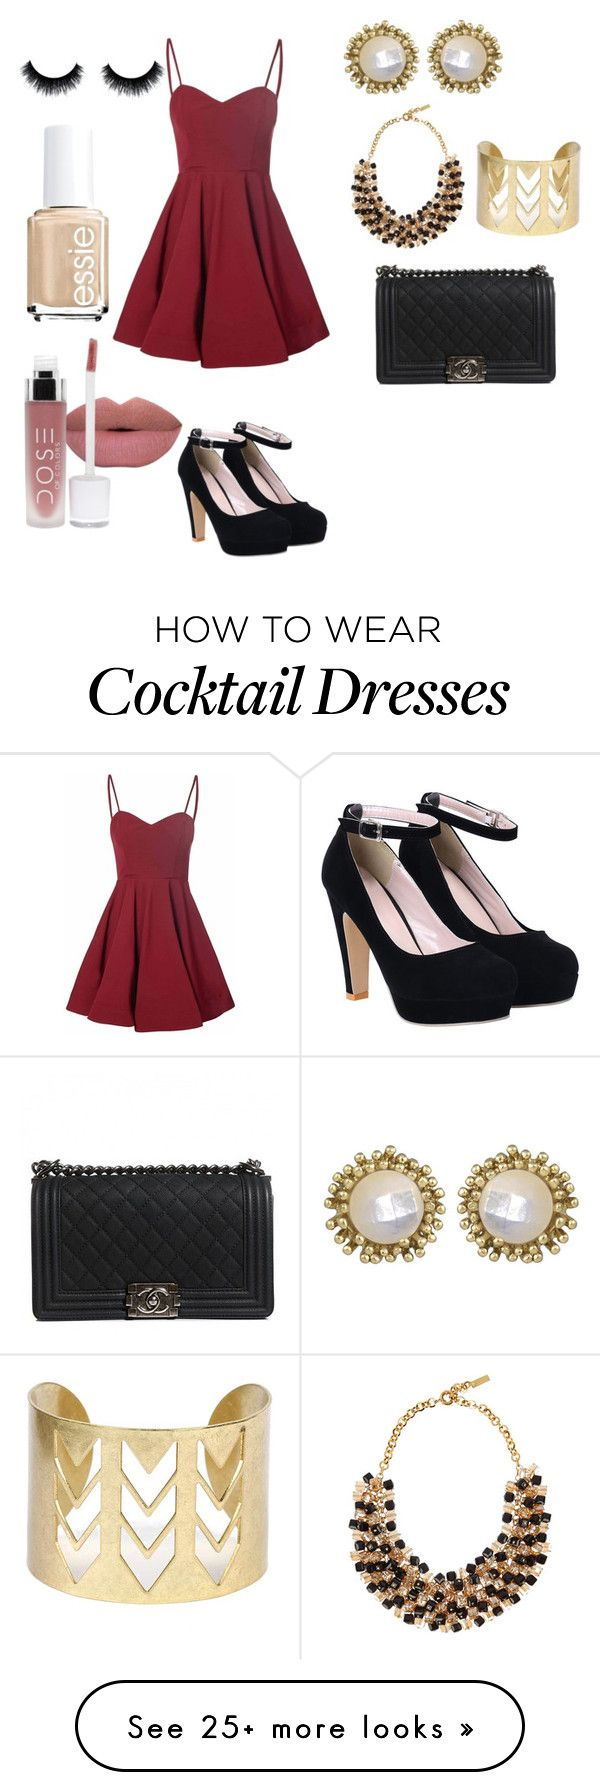 """Party"" by heyhello3593 on Polyvore featuring Glamorous, Kendra Scott, Etro, Chanel and Essie"